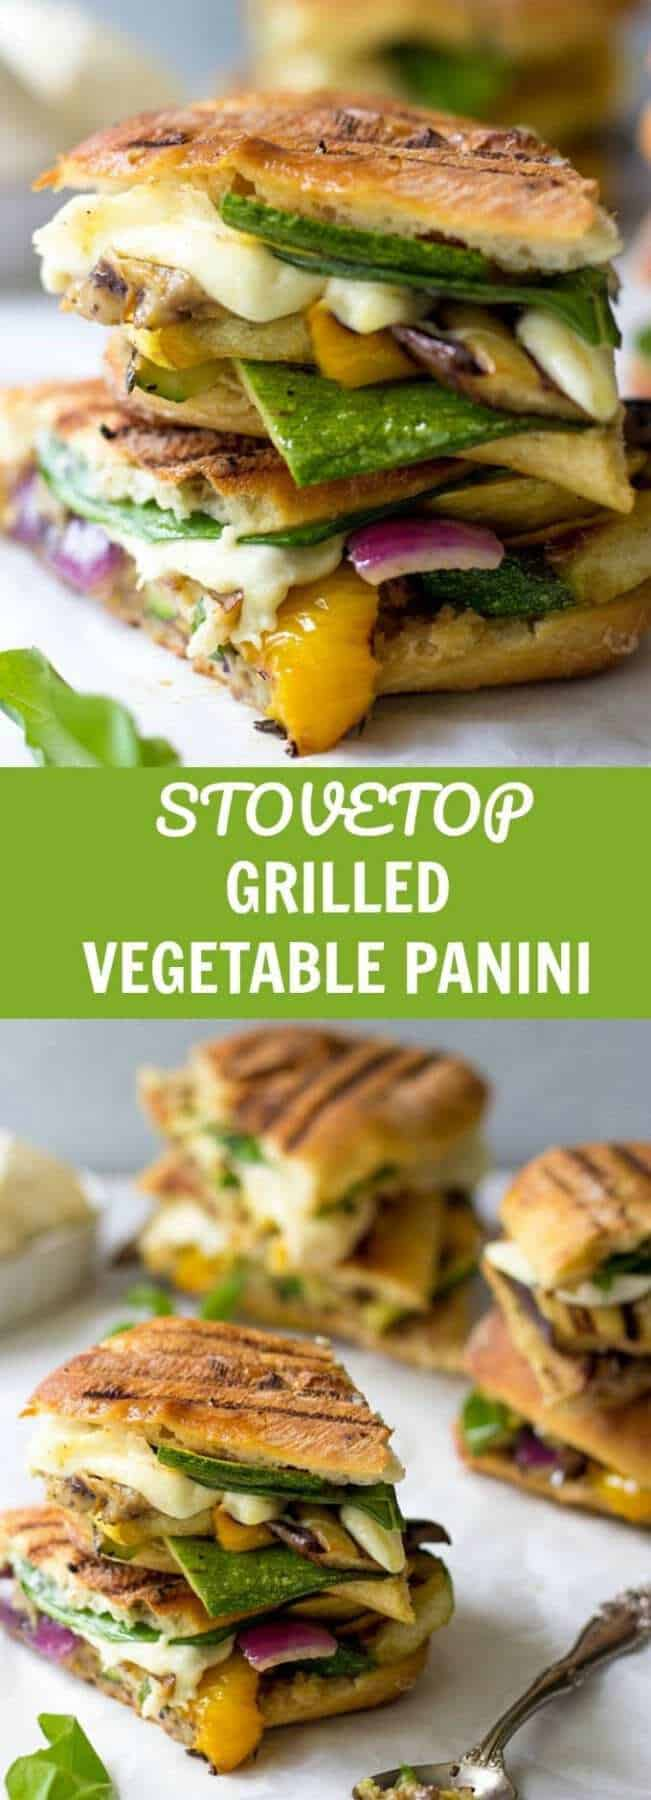 Smokingly DELICIOUS, these Stovetop Grilled Vegetable Panini are loaded with comforting flavors of summer vegetables and melty cheese. Best part - you don't even need a panini maker!